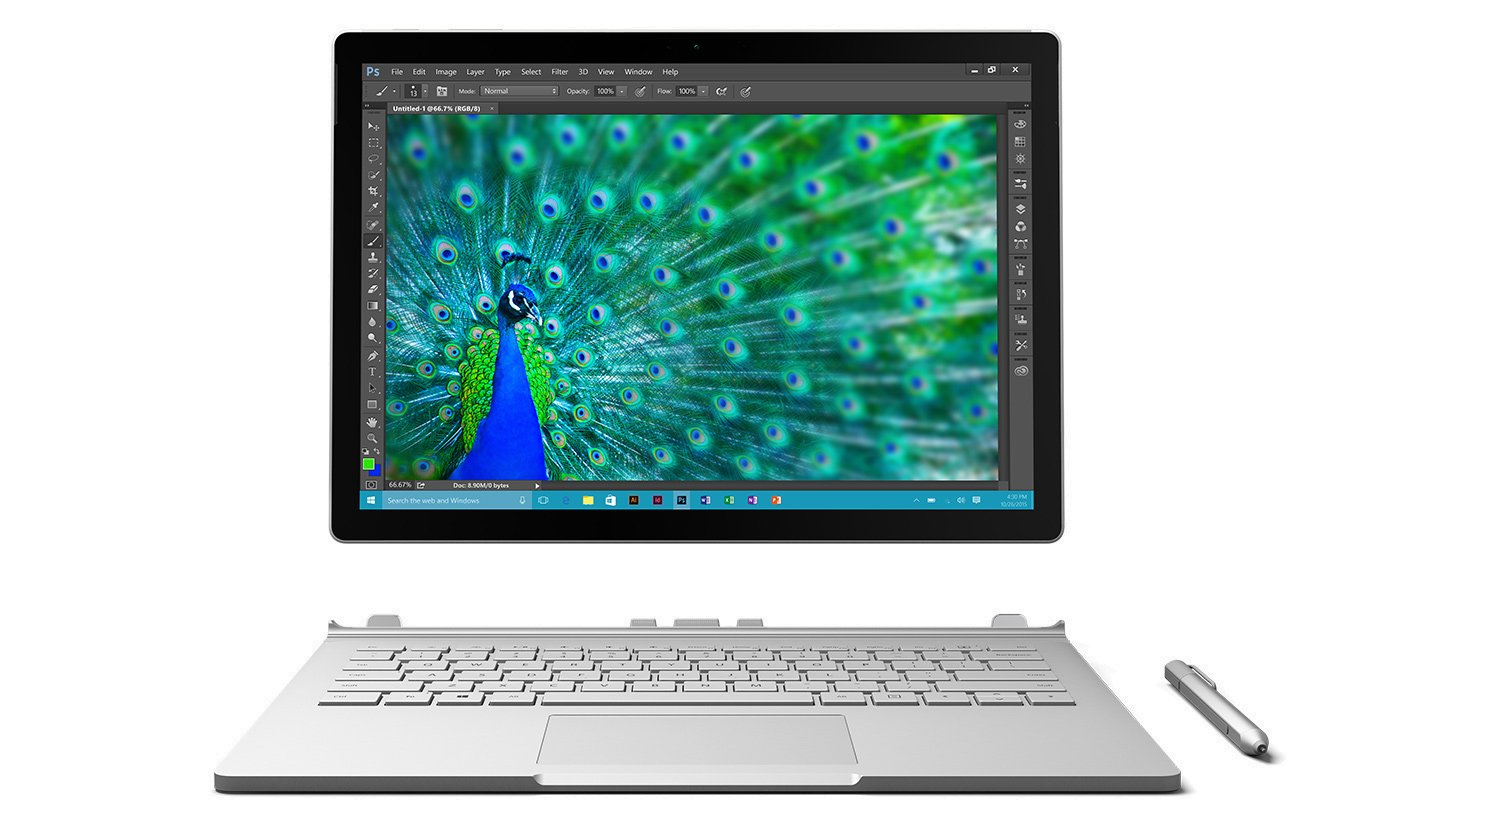 Microsoft Surface Book Tablet PC - 13.5'' - PixelSense - Wireless LAN - Intel Core i5 i5-6300U Dual-core (2 Core) 2.40 GHz - Silver TP4-00001 by Microsoft